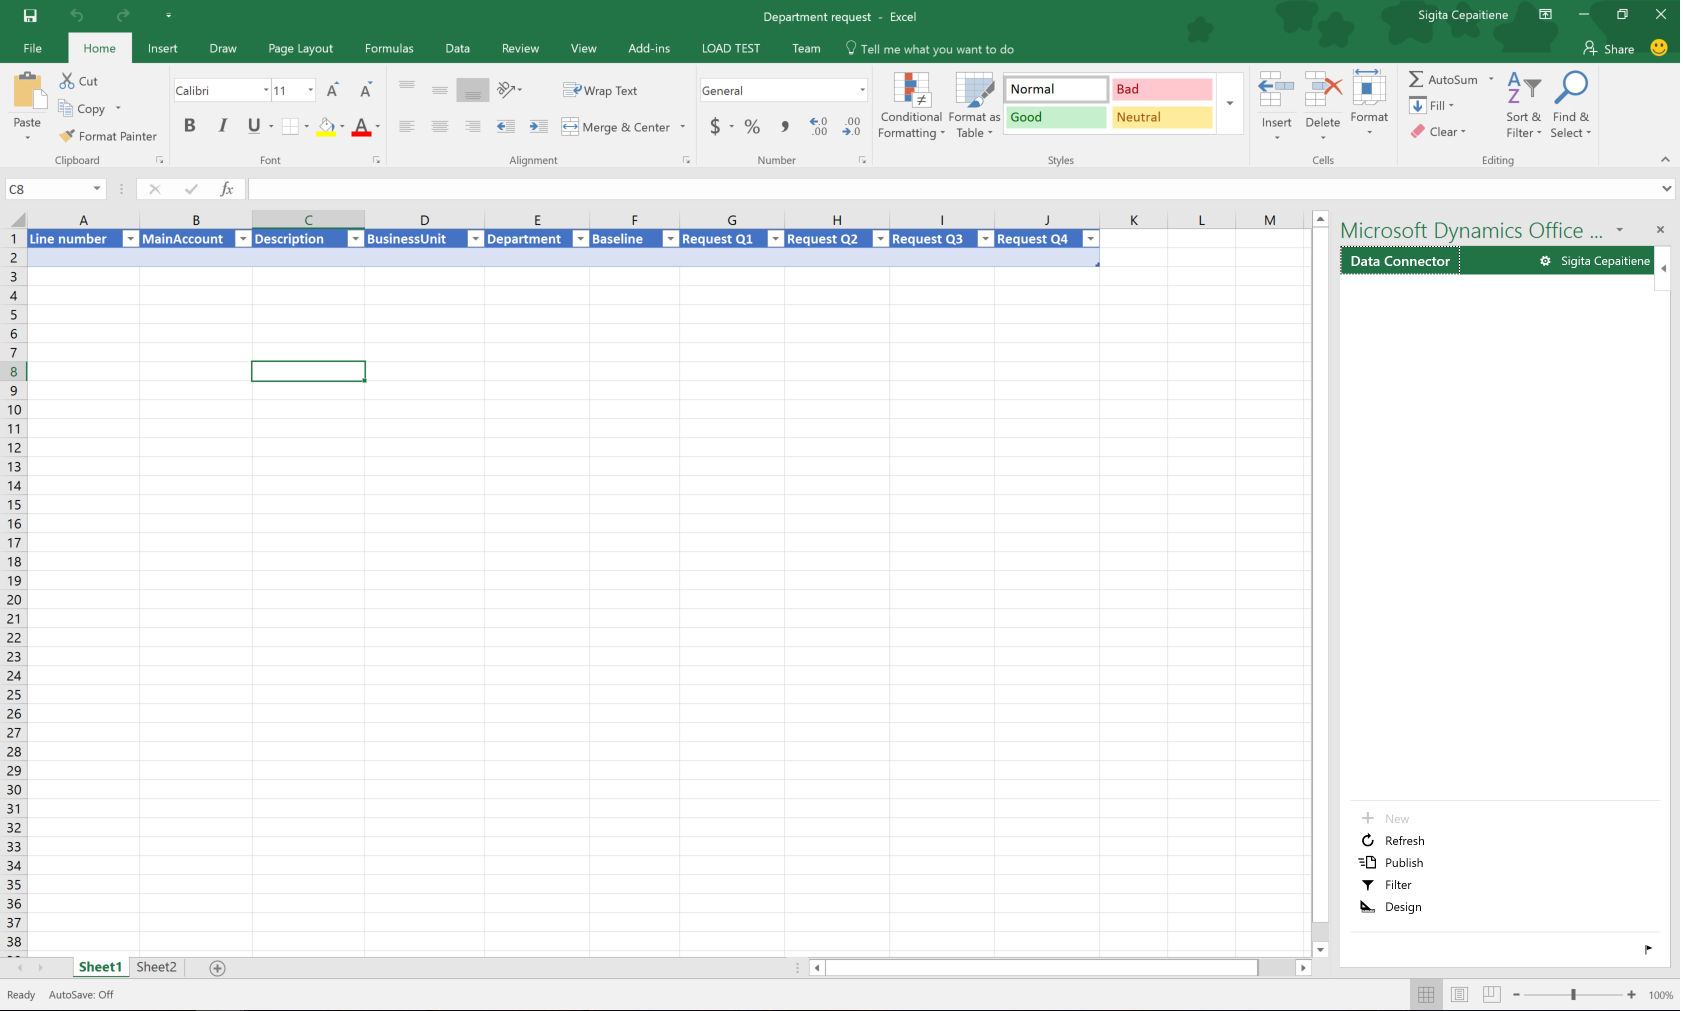 Time In Lieu Spreadsheet With Regard To Budget Planning Templates For Excel  Finance  Operations